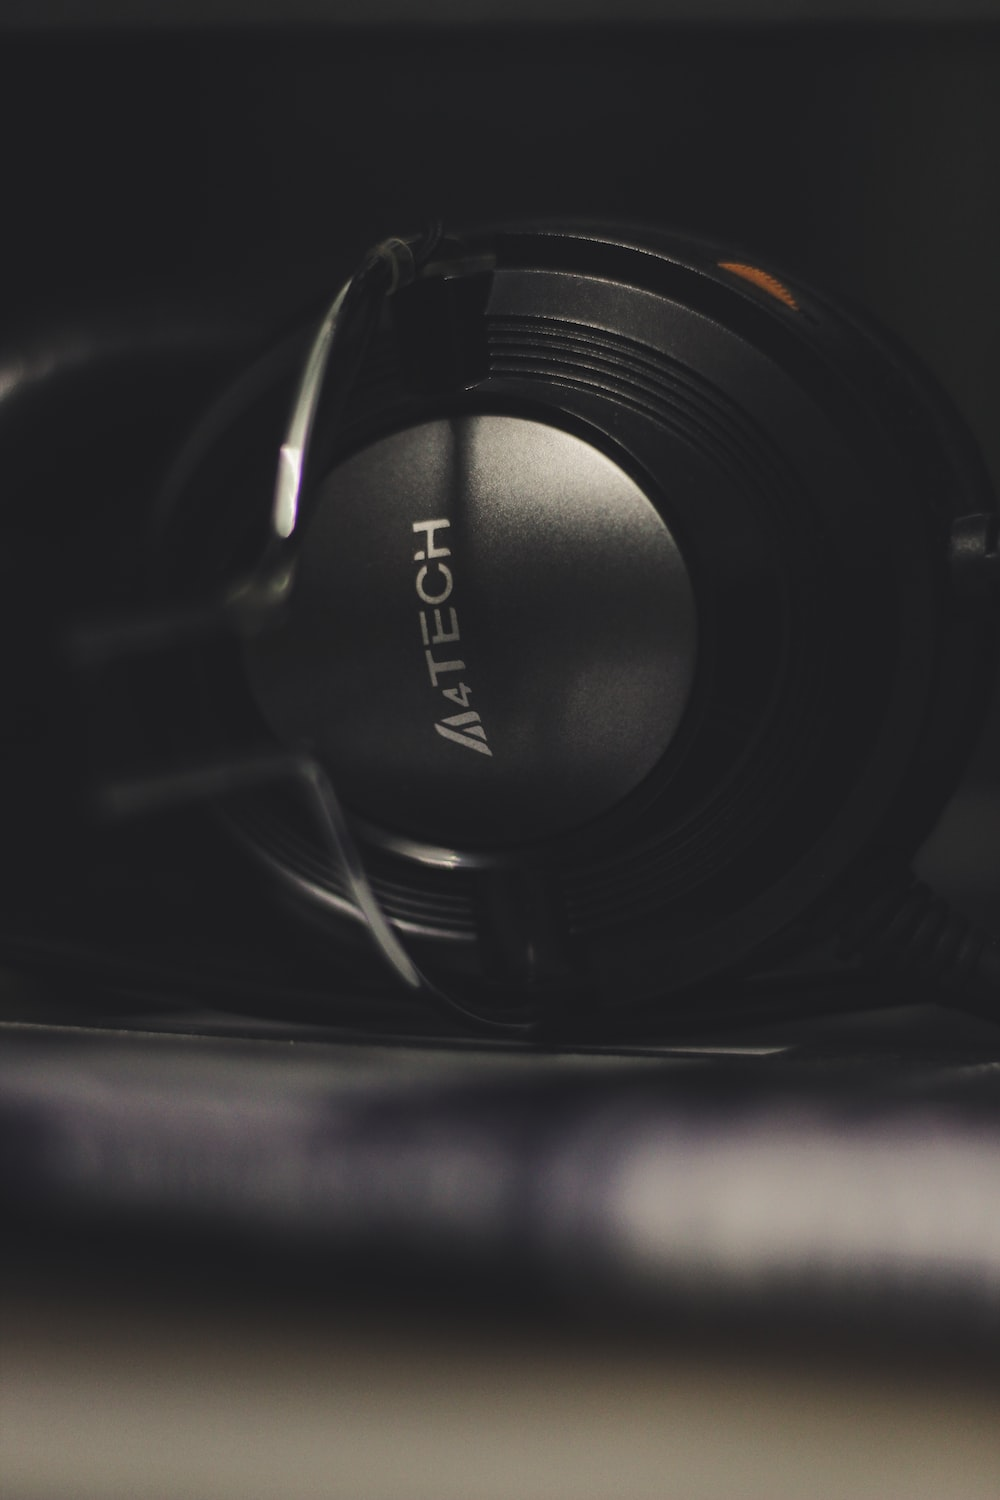 black and gray A4Tech headset